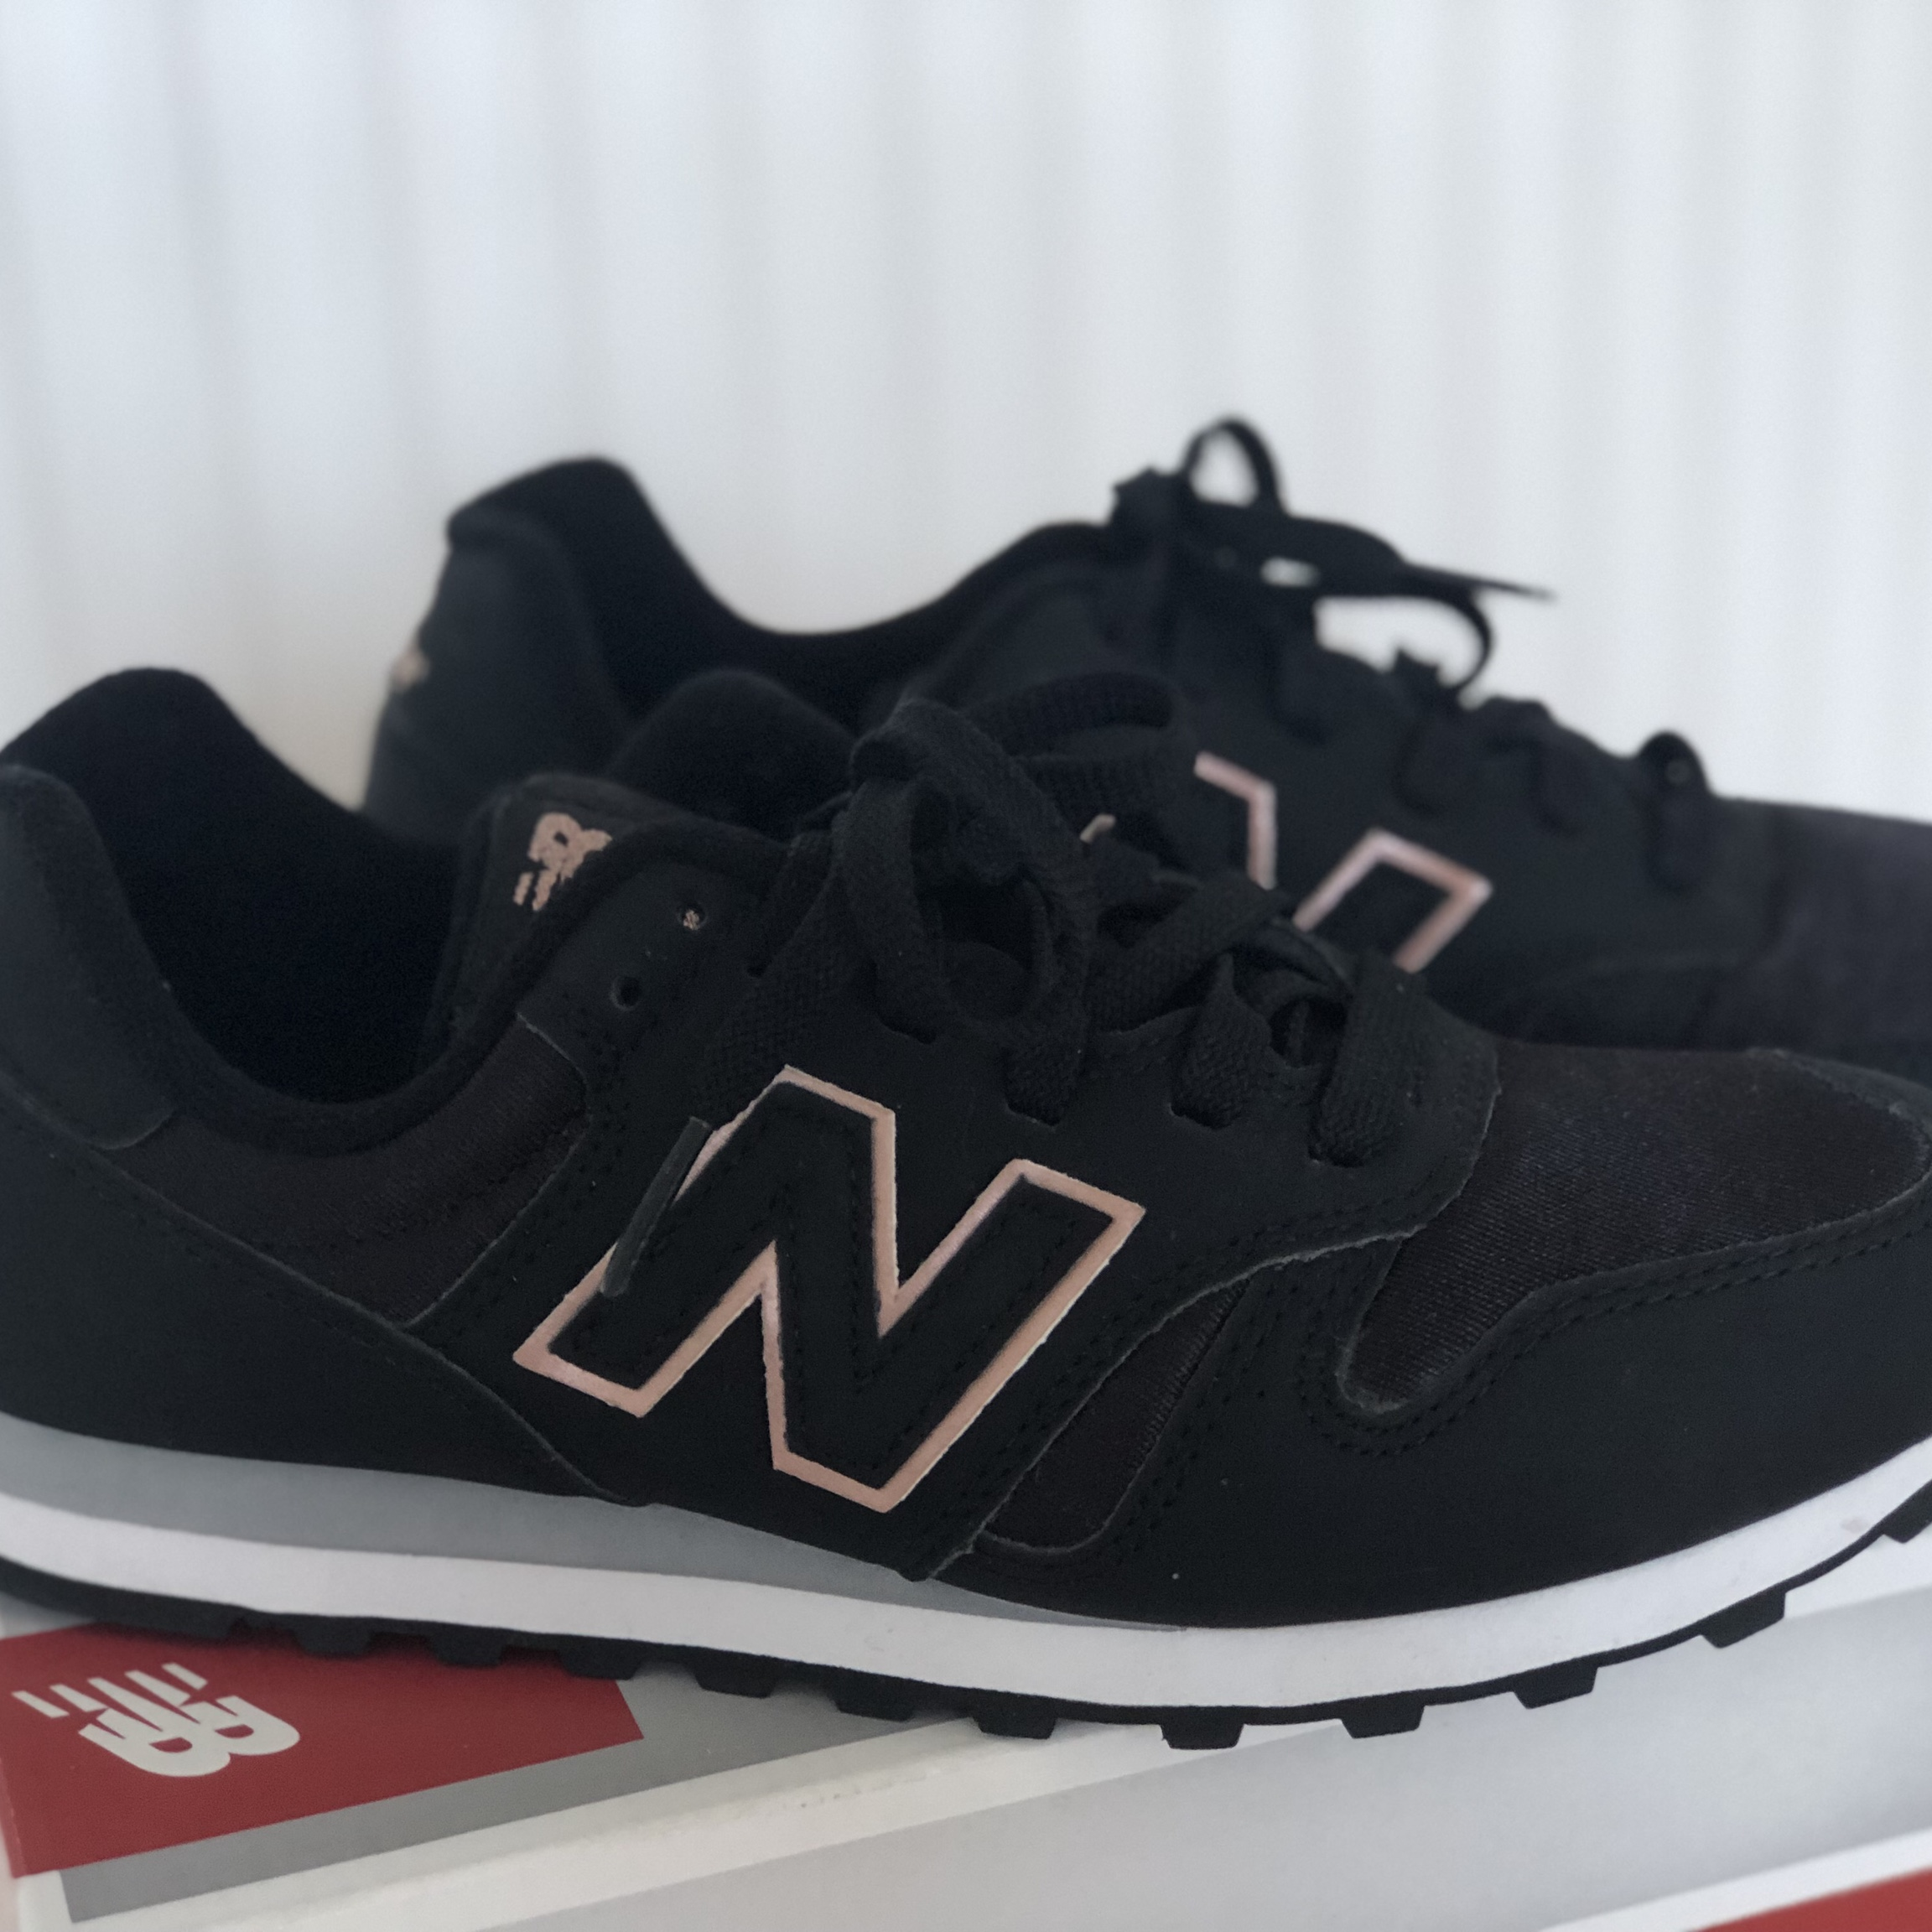 NEW NEW BALANCE 373 Black and Rose Gold trainers. Depop